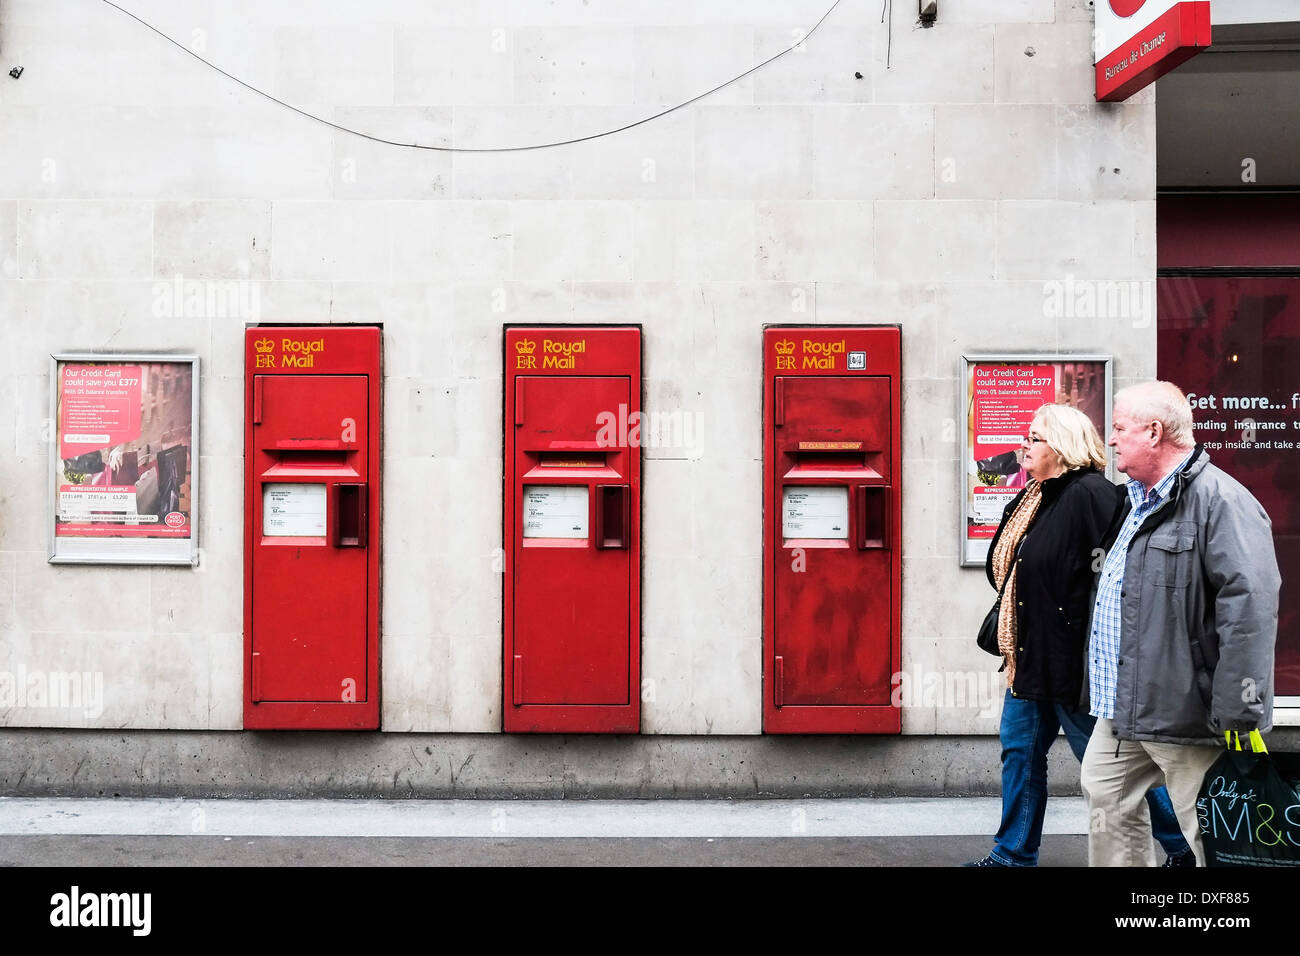 Three Royal Mail letter boxes in a wall in London. - Stock Image